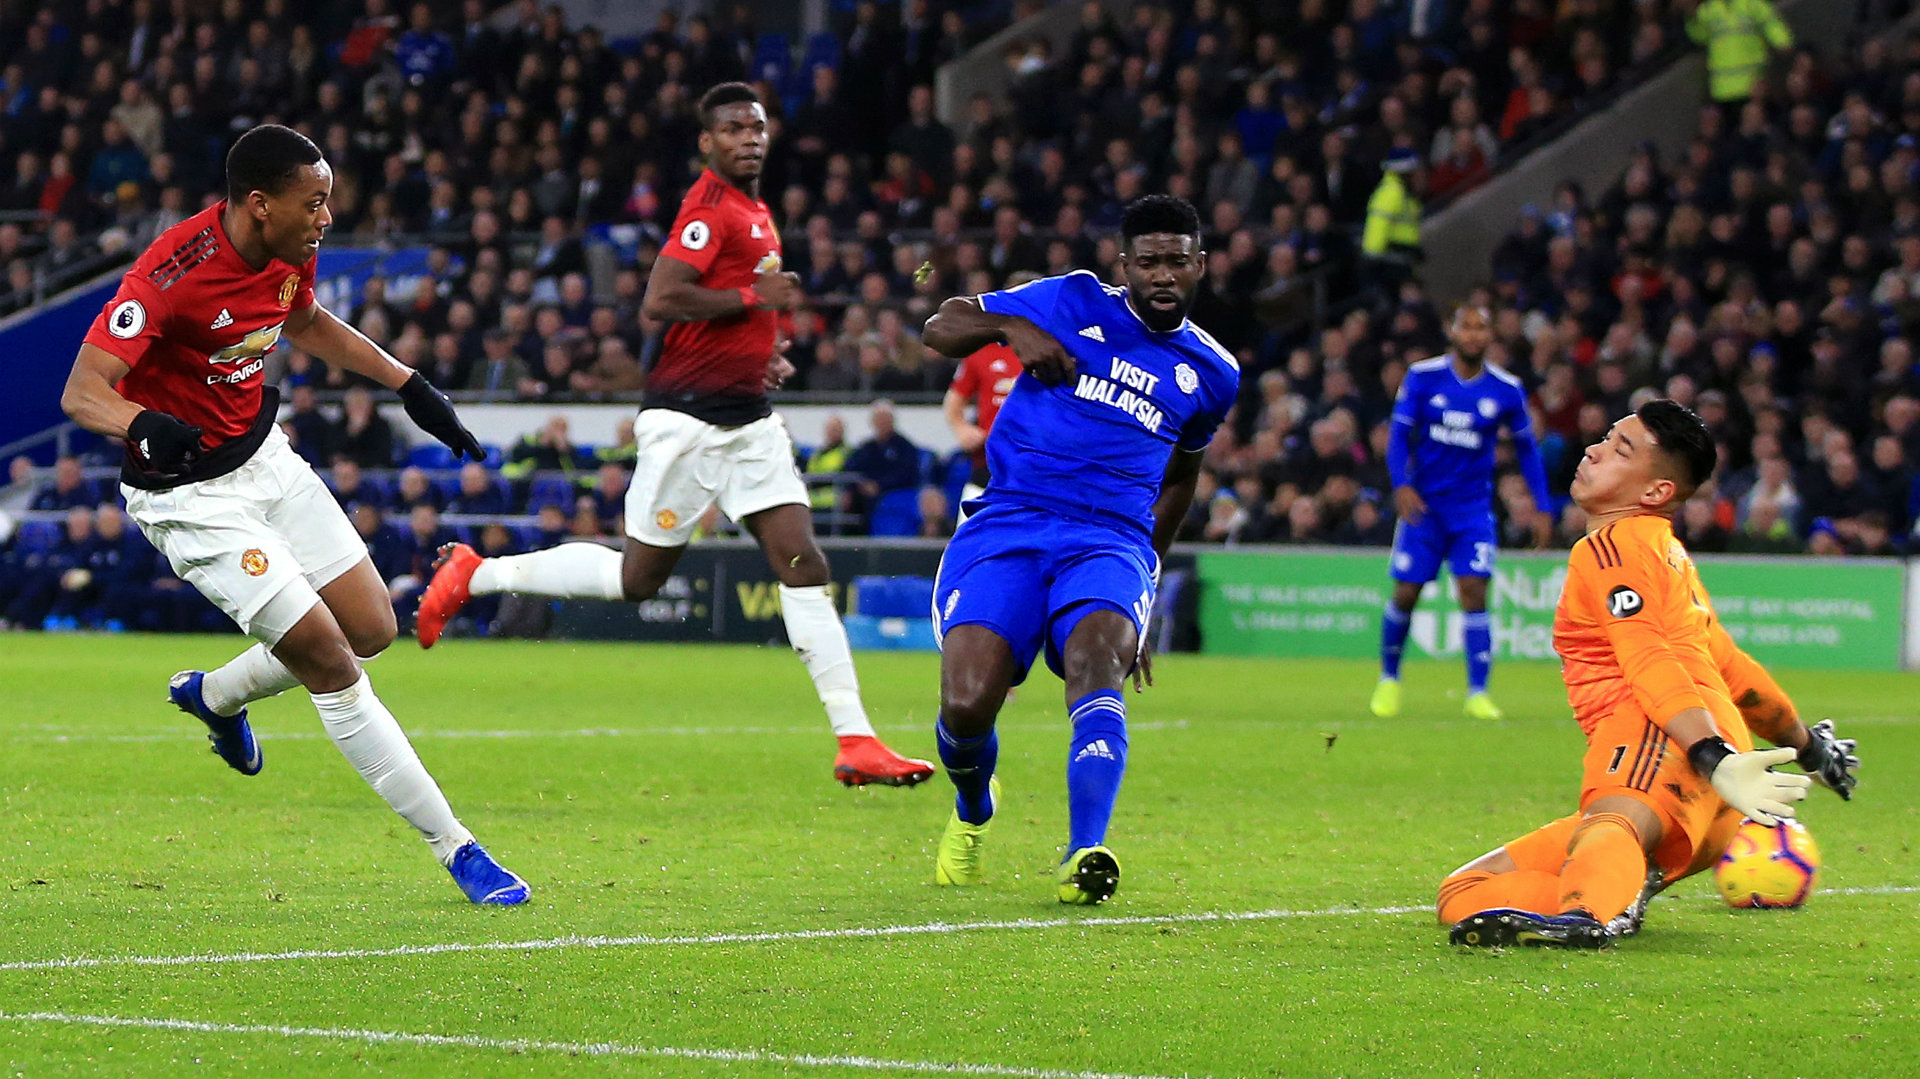 Anthony Martial Cardiff vs Manchester United Premier League 2018-19